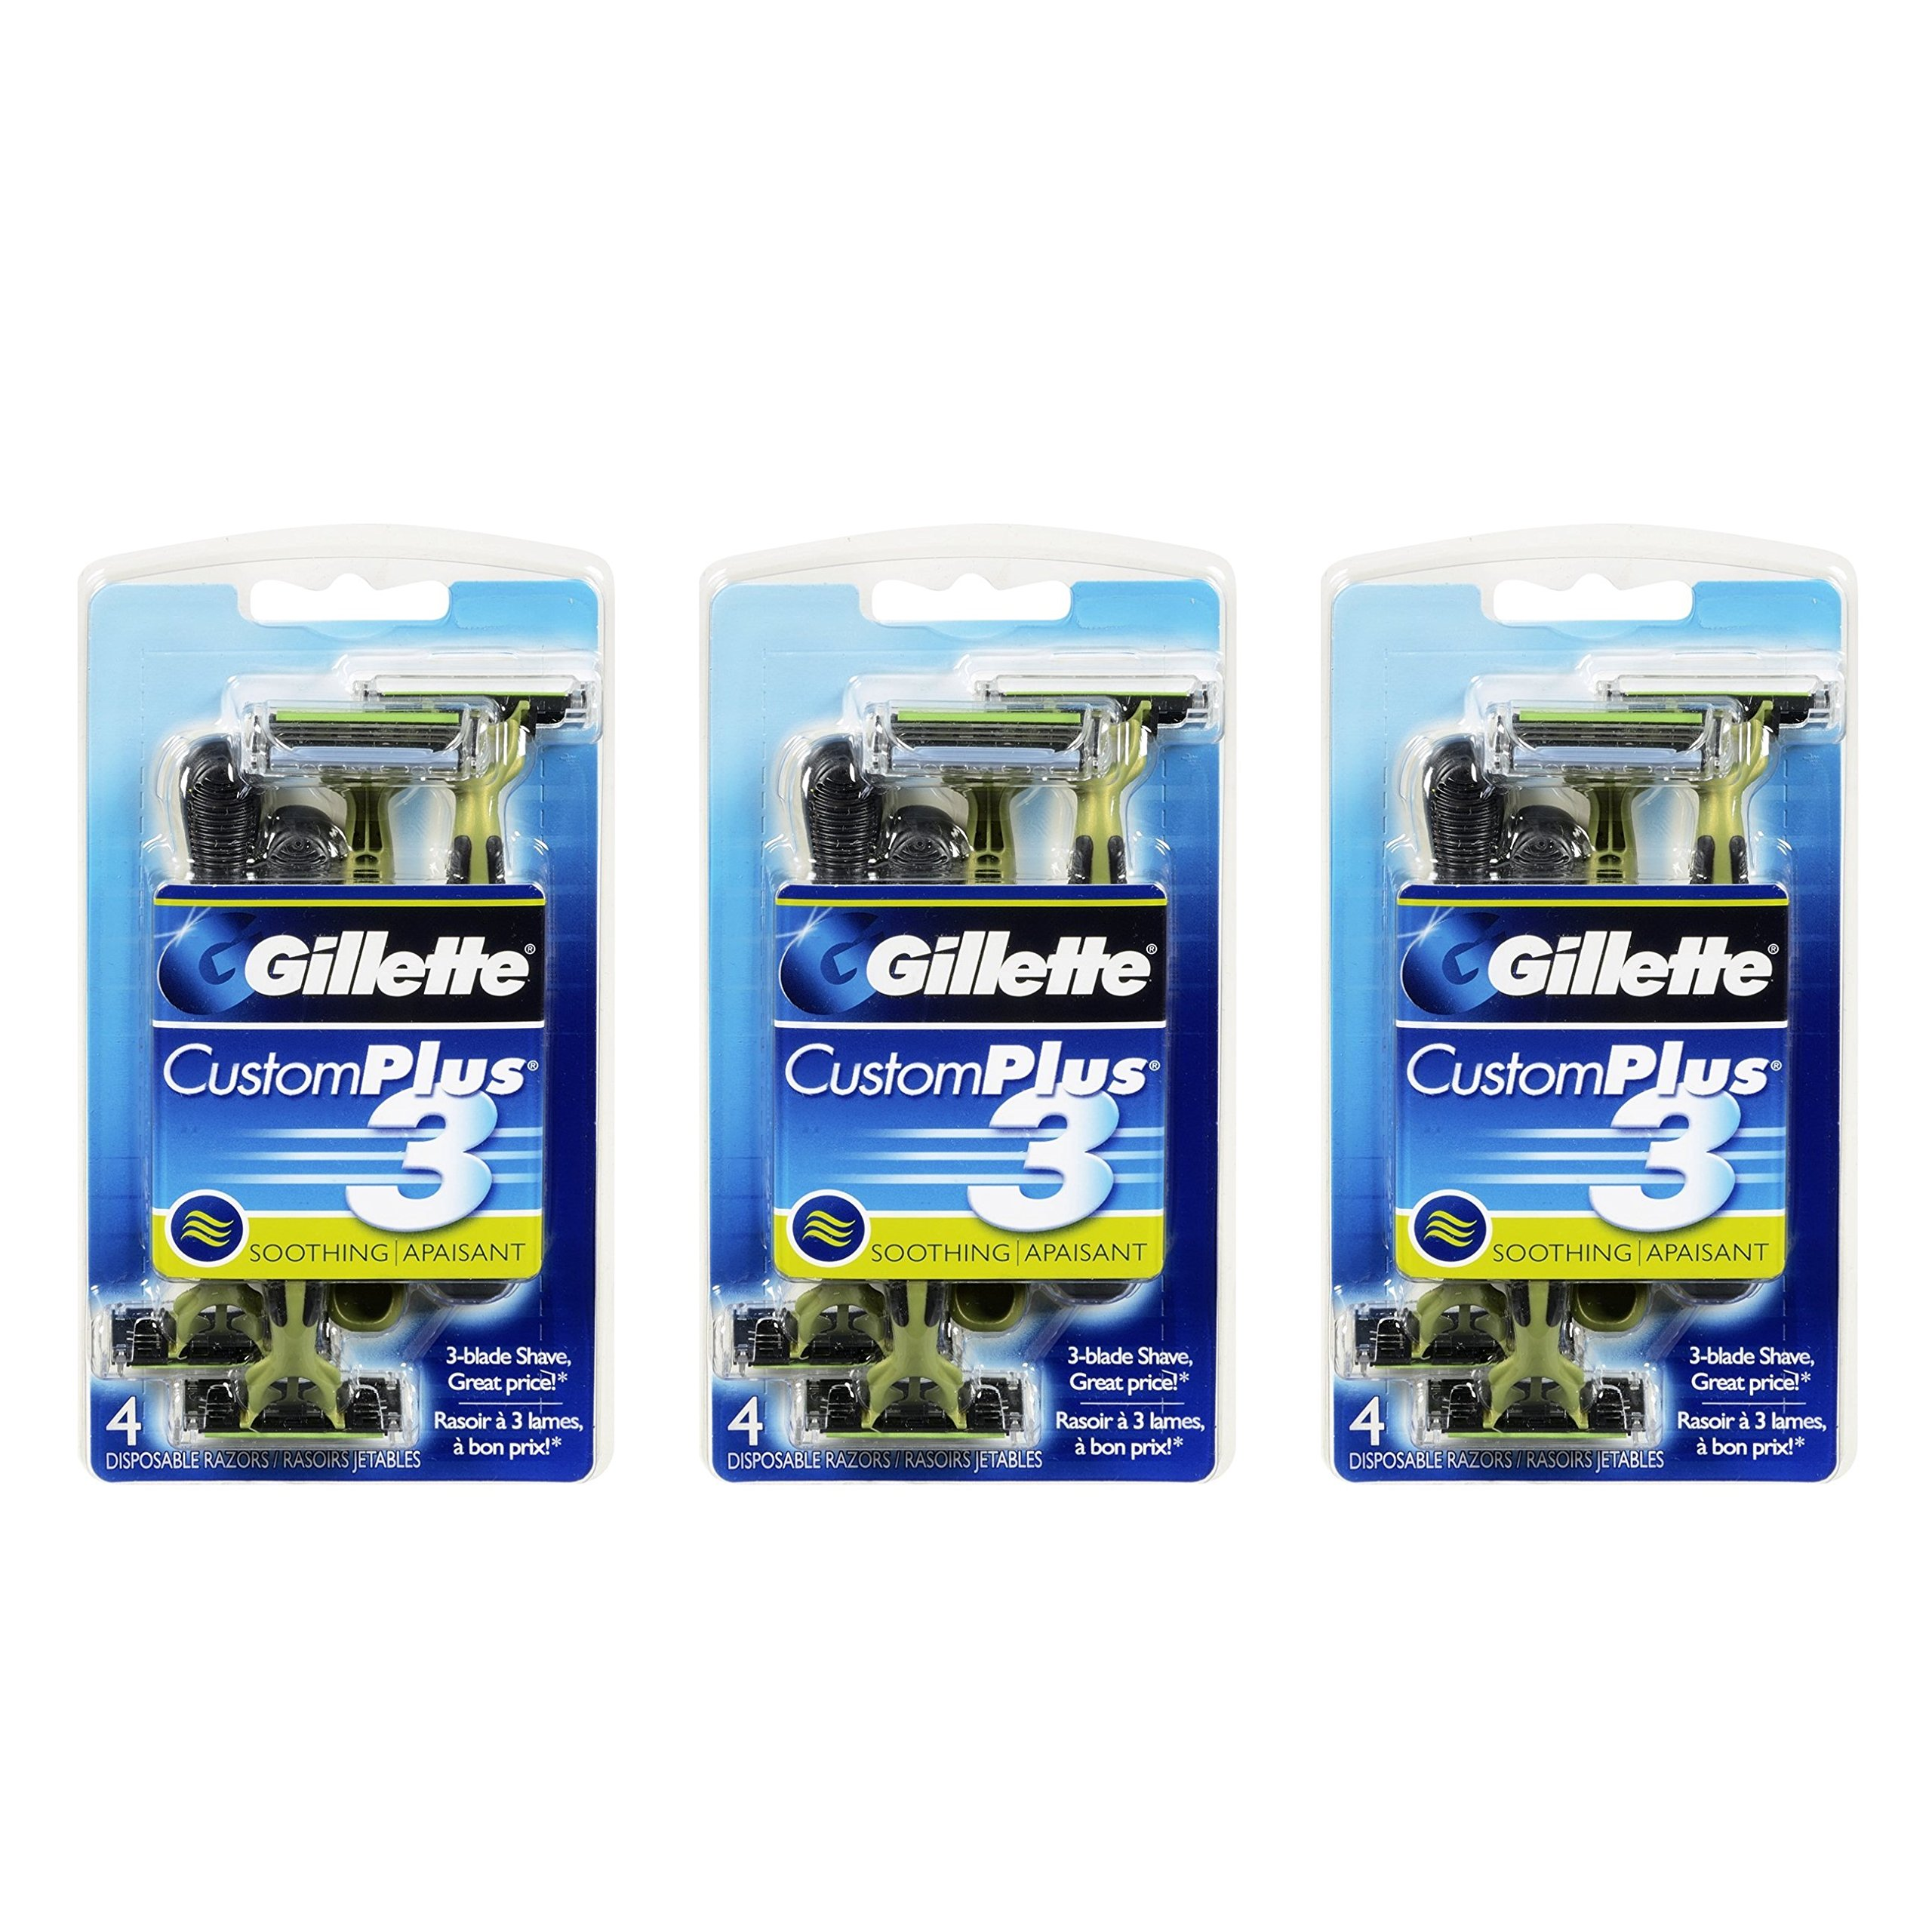 Gillette Customplus 3 Soothing Disposable Razor 4 Count (Pack of 3)